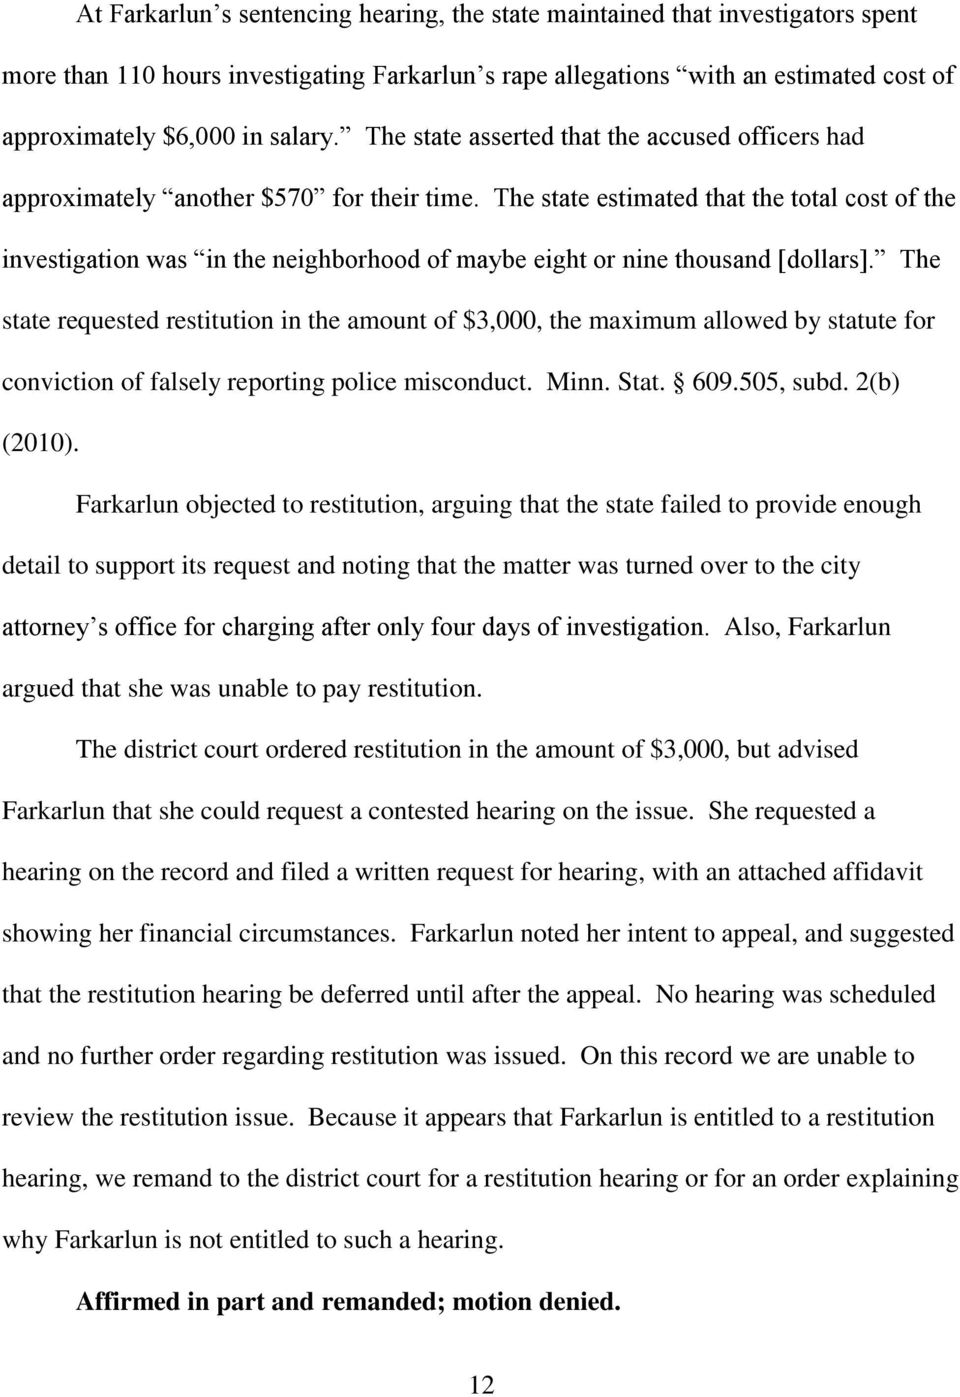 The state estimated that the total cost of the investigation was in the neighborhood of maybe eight or nine thousand [dollars].